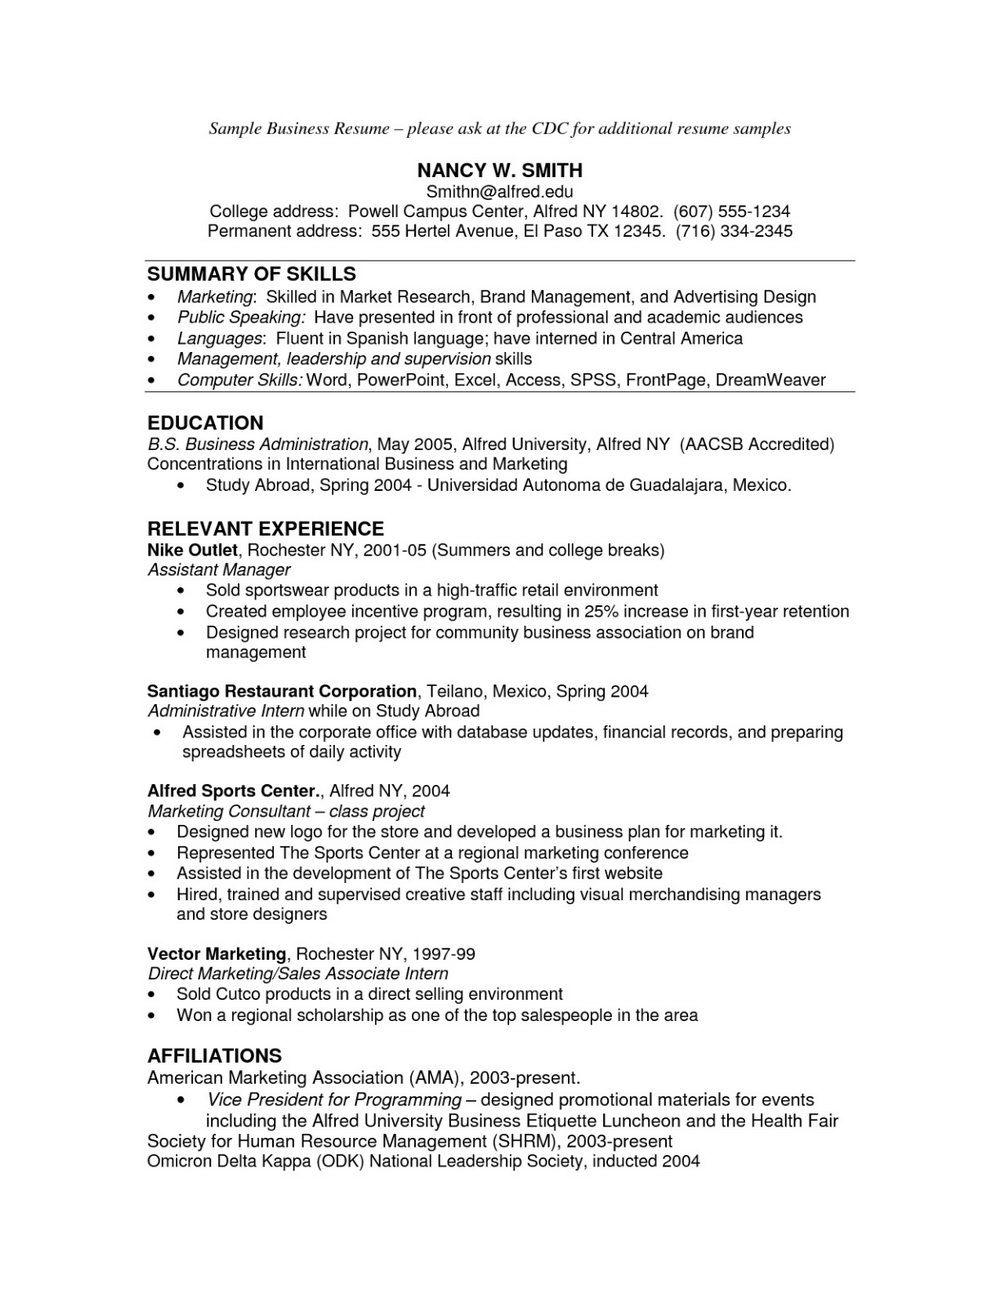 Merrill Lynch Business Plan Template